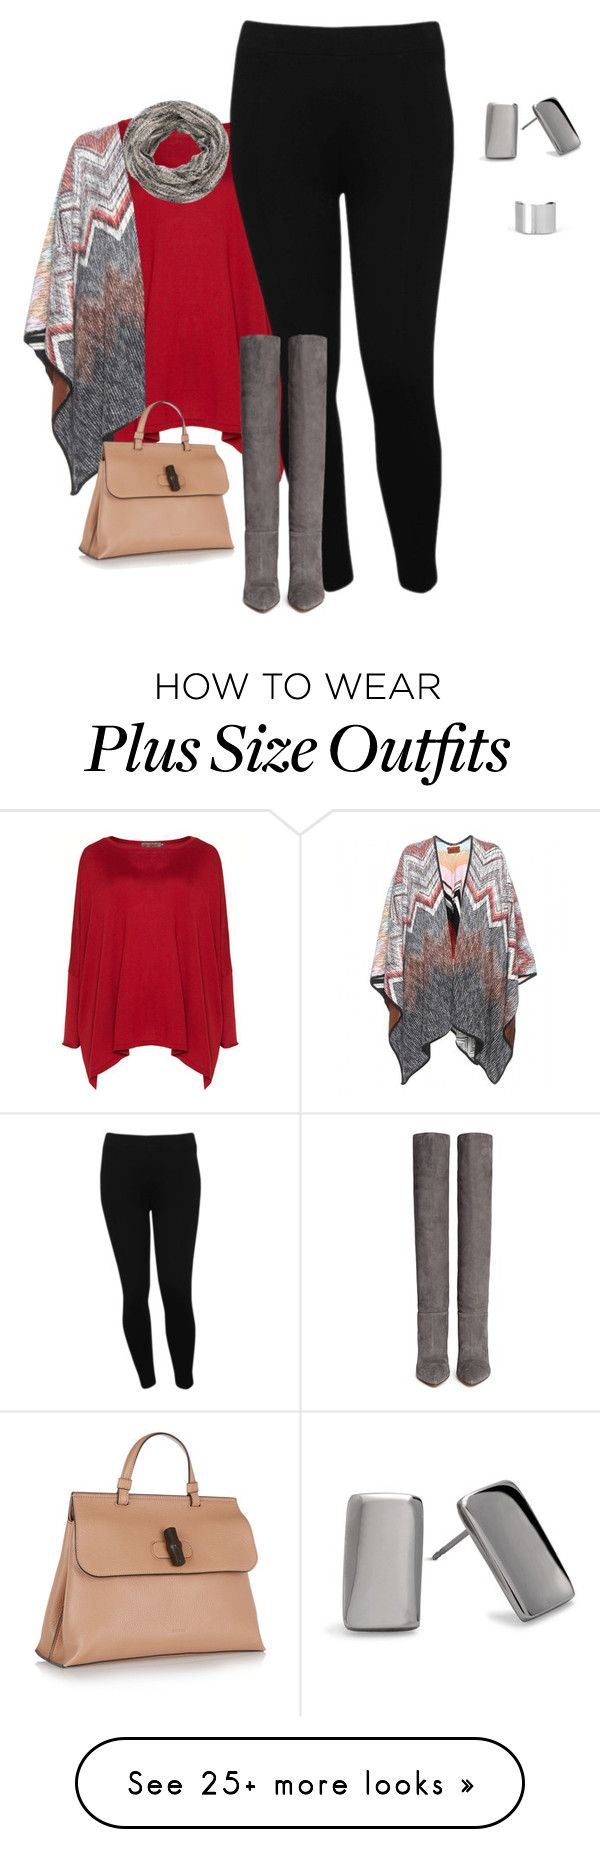 """plus size winter chic"" by kristie-payne on Polyvore featuring Exelle, M&Co, maurices, Gianvito Rossi, Missoni, Gucci, Maison Margiela and Chico's"